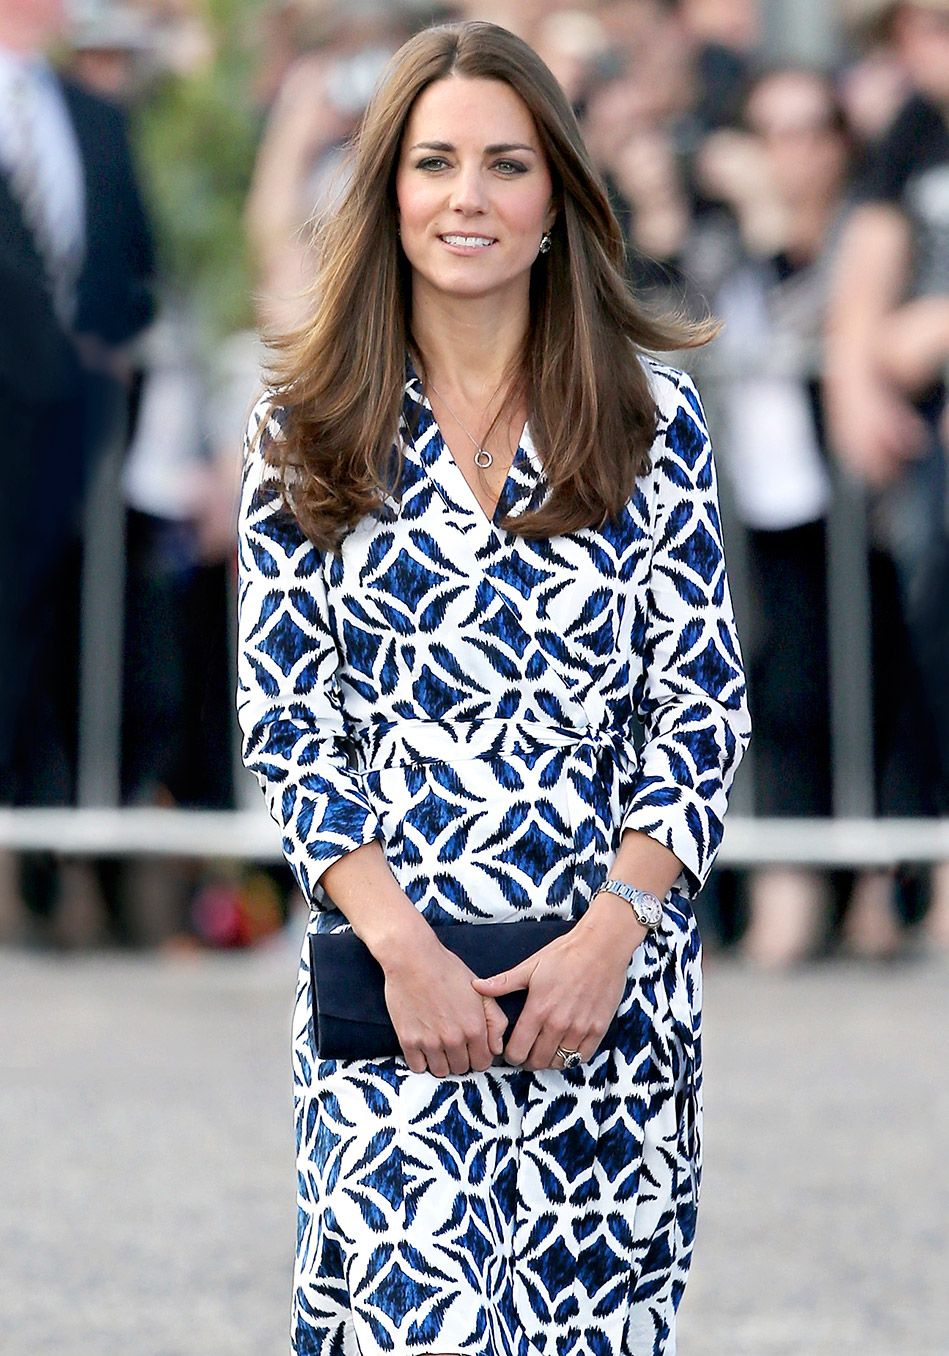 Lace dress kate middleton  Blues Traveler  Exotic Urban and Classy